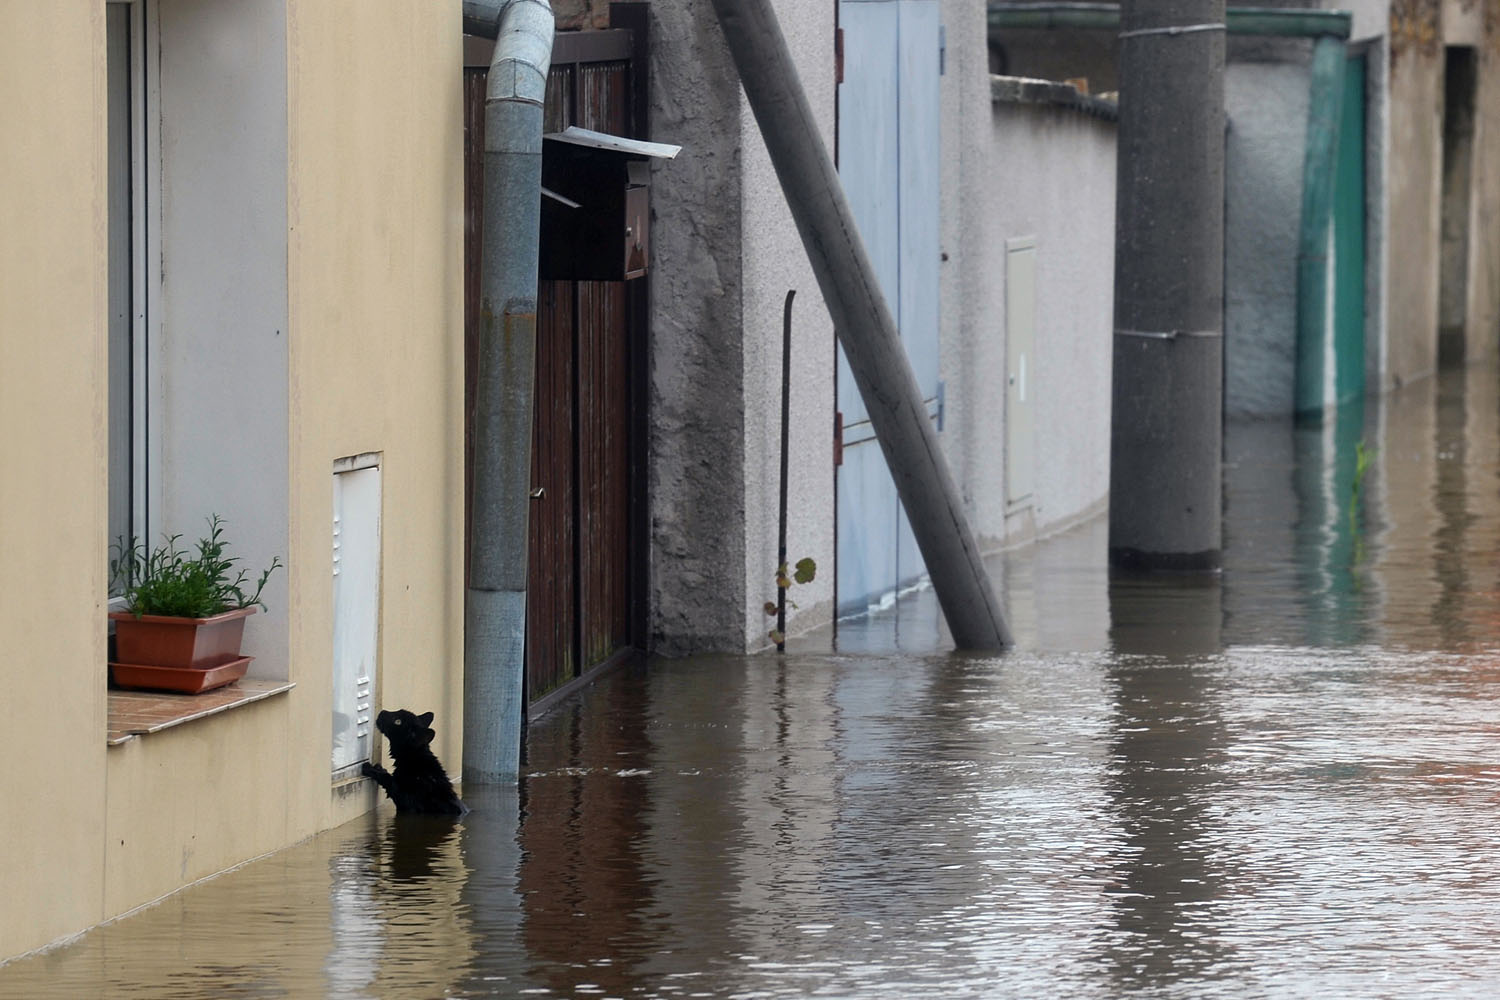 June 4, 2013. A cat tries to escape from water by the river Vltava in Kly, near Melnik, Czech Republic.